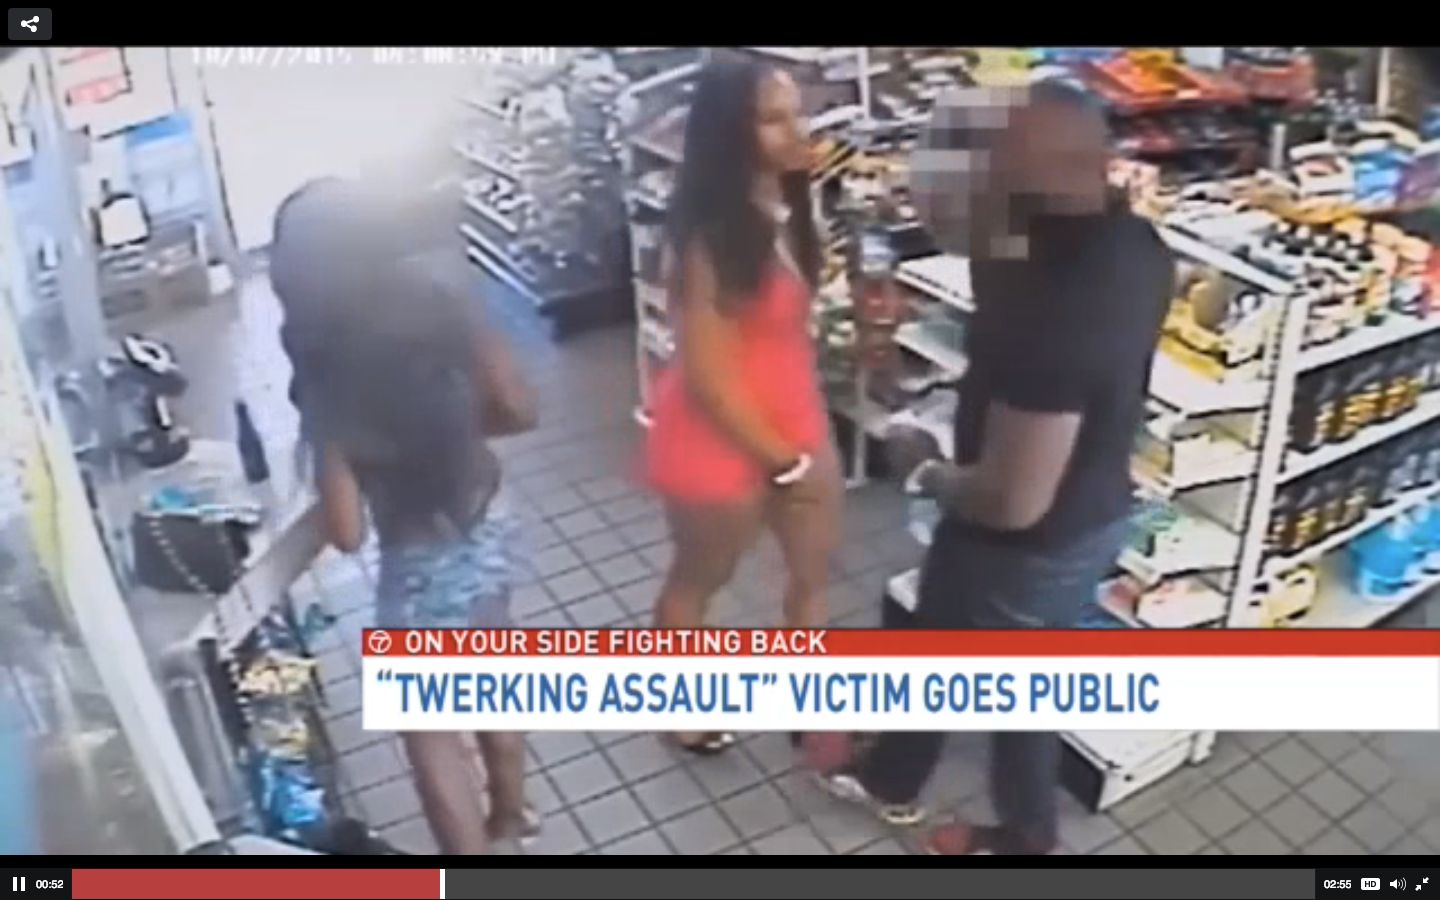 A middle school teacher is speaking out after two women were filmed groping and twerking on him inside of a convenience store.